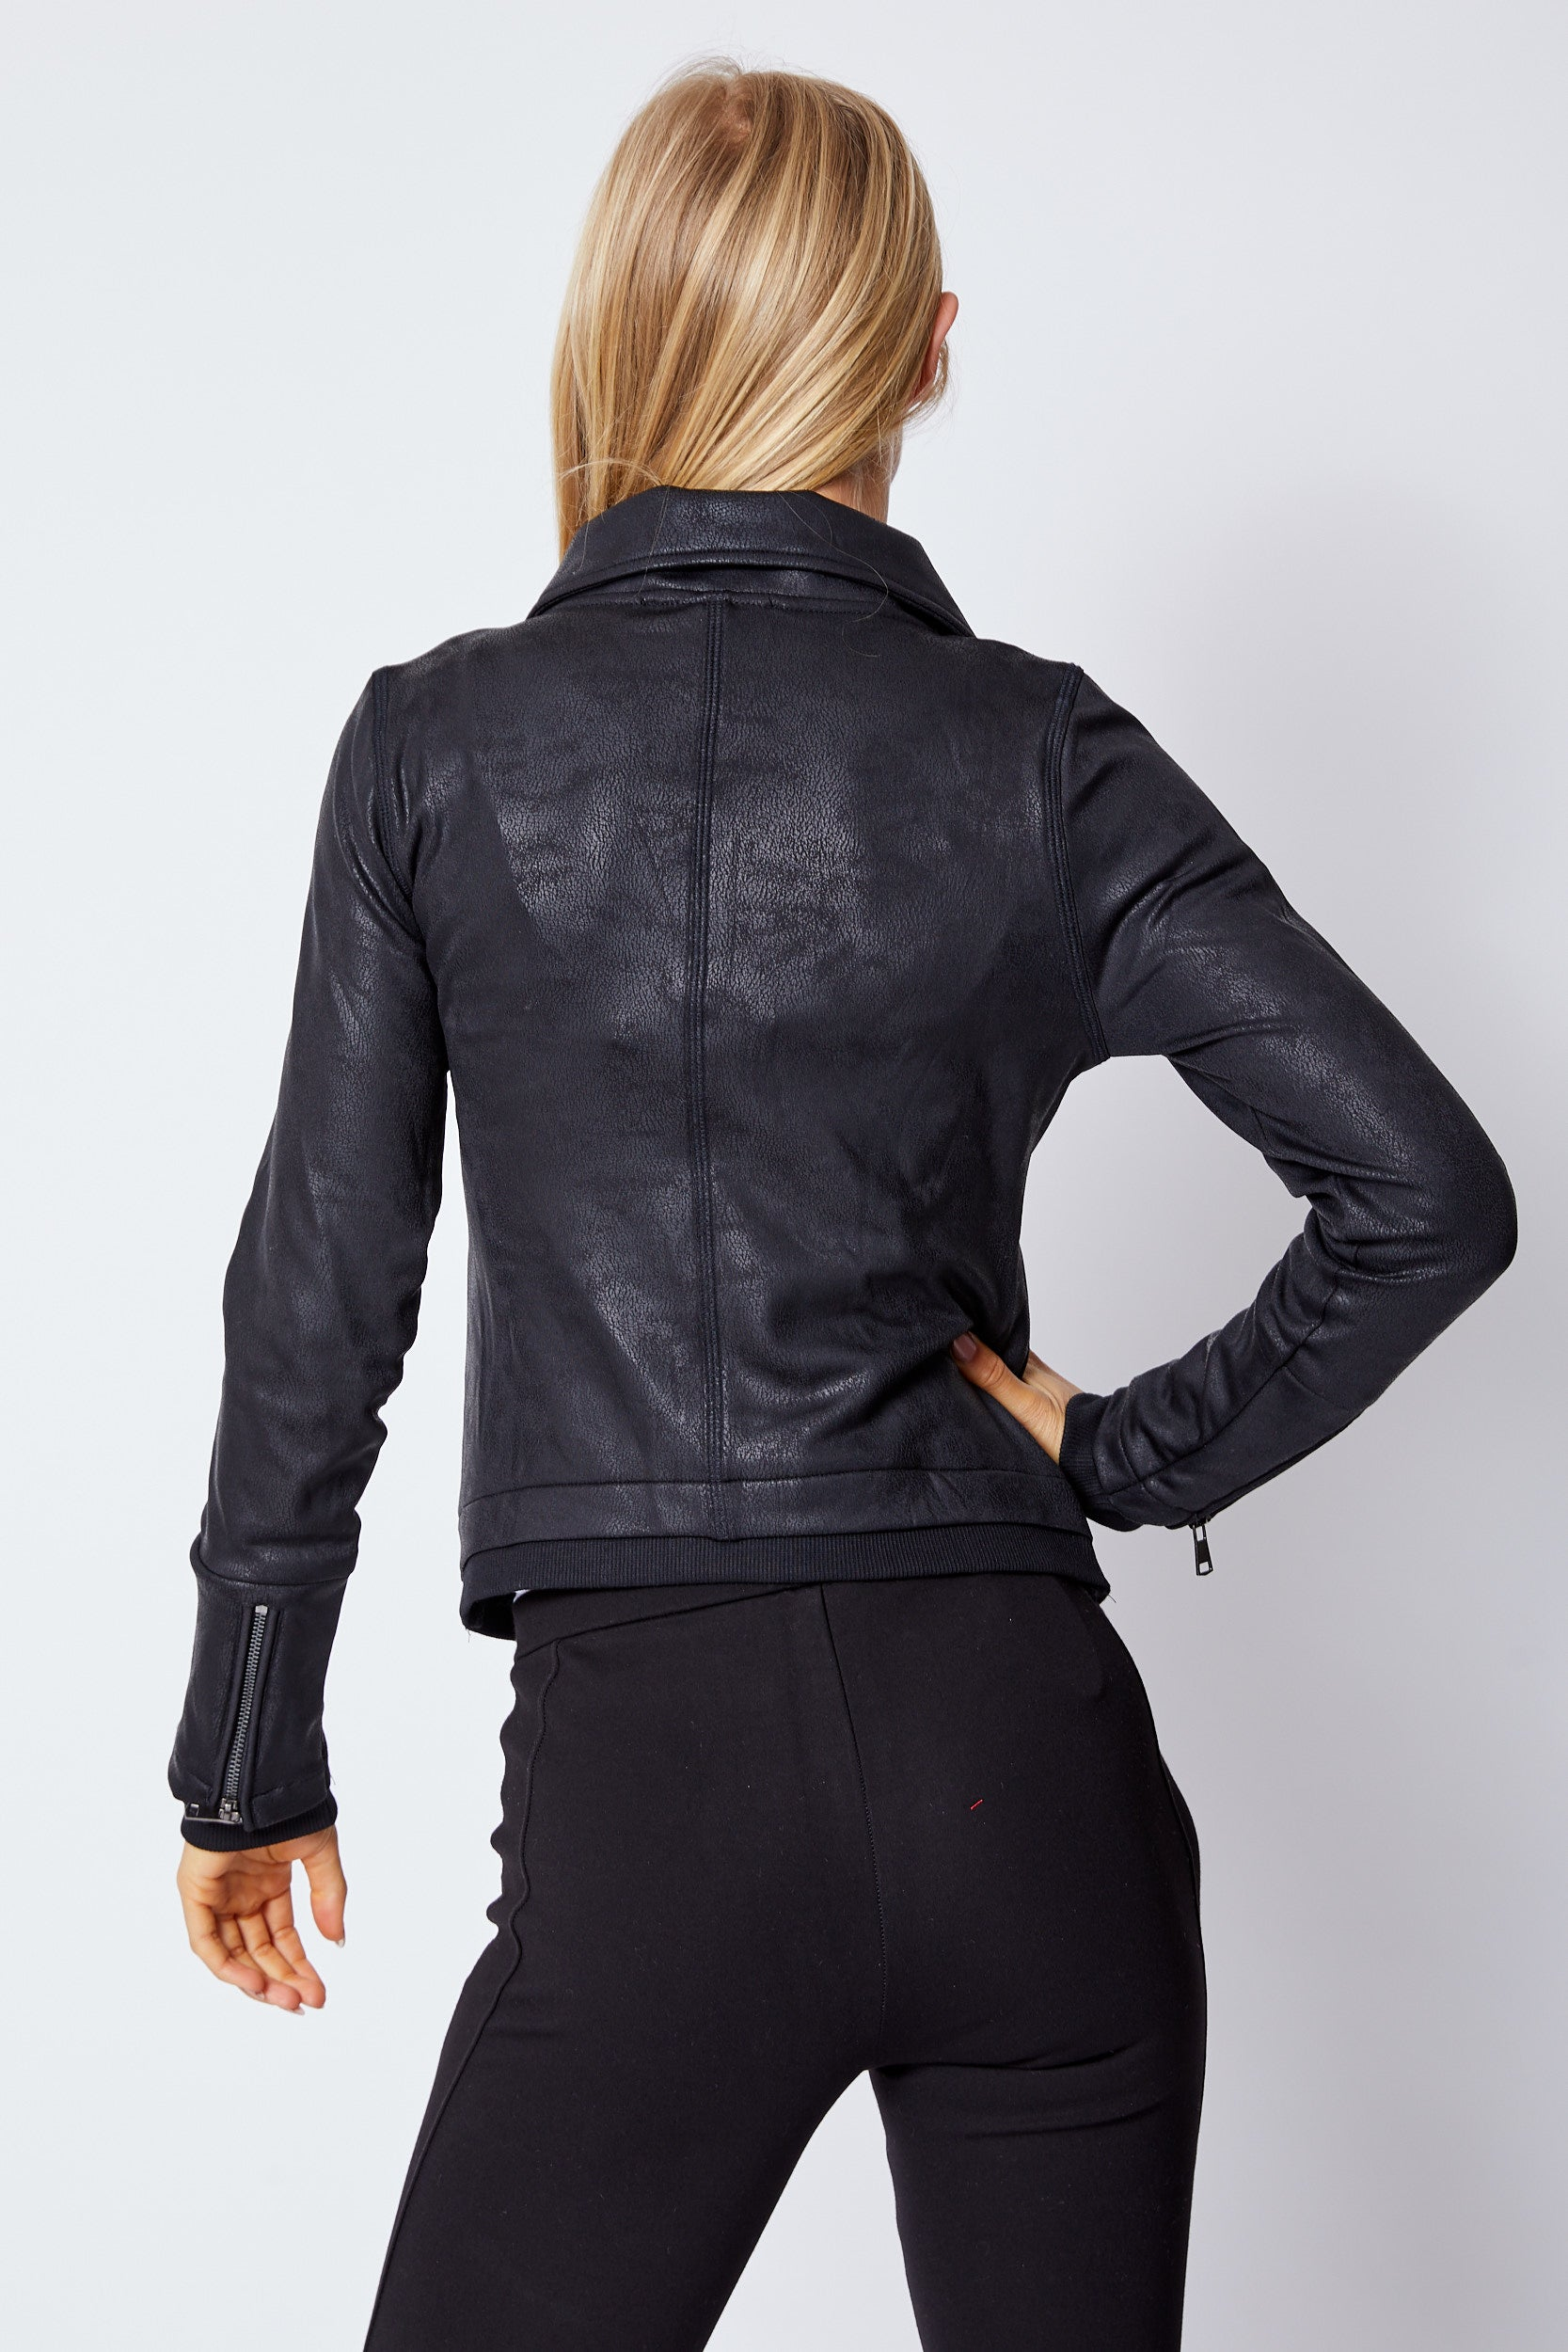 Moto Faux Leather Jacket - Jacqueline B Clothing